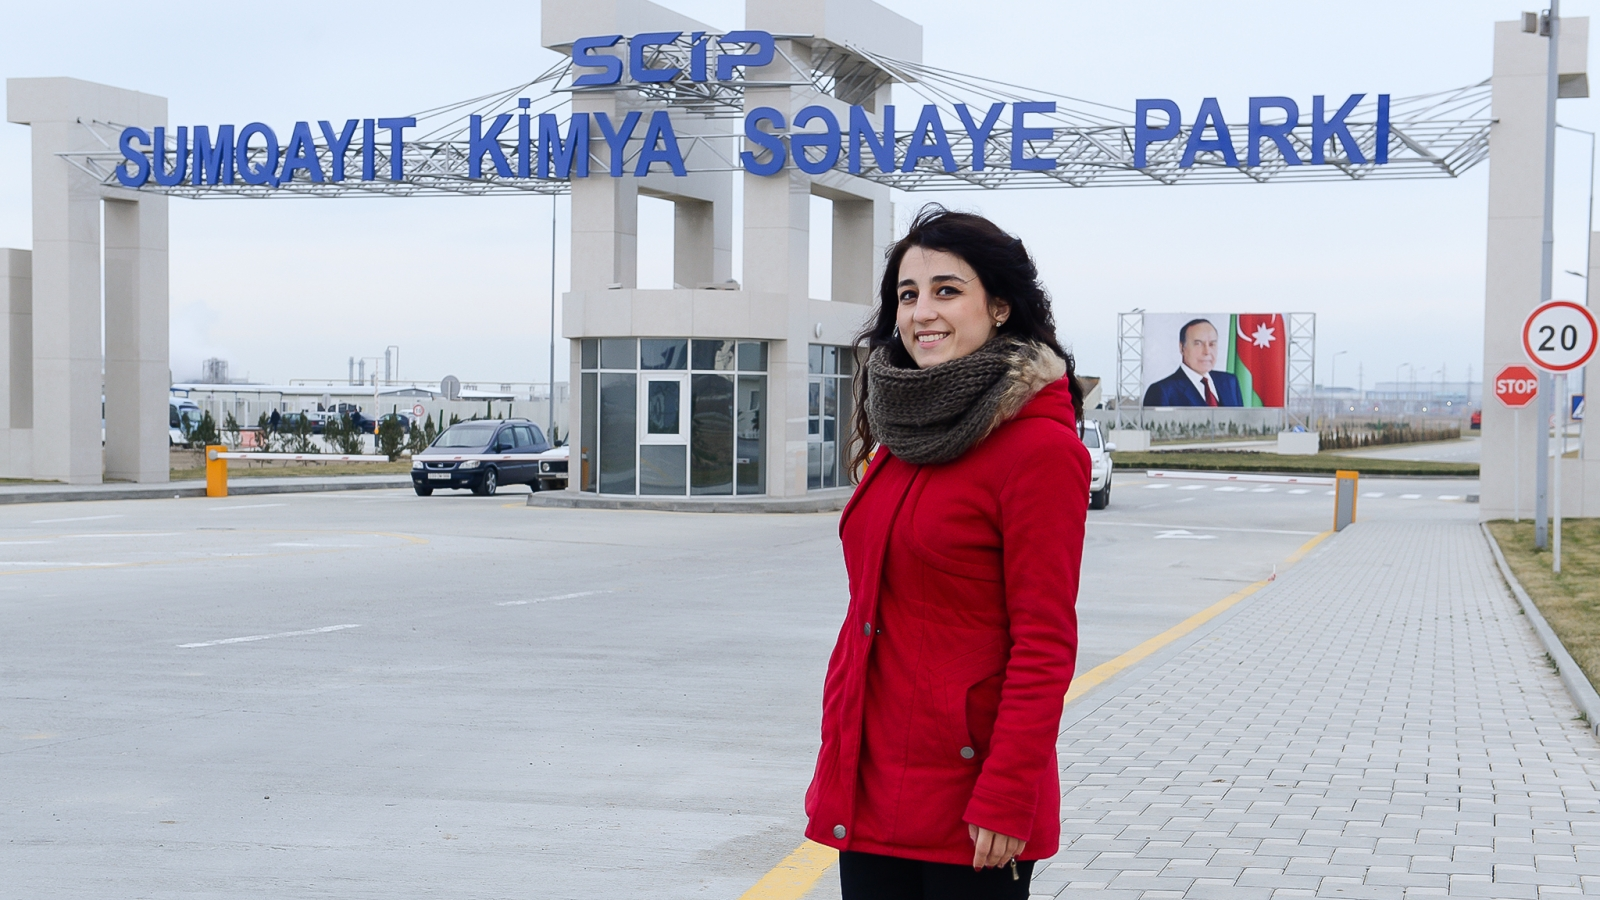 Irana Alimova at chemical industrial park in the city of Sumqayit